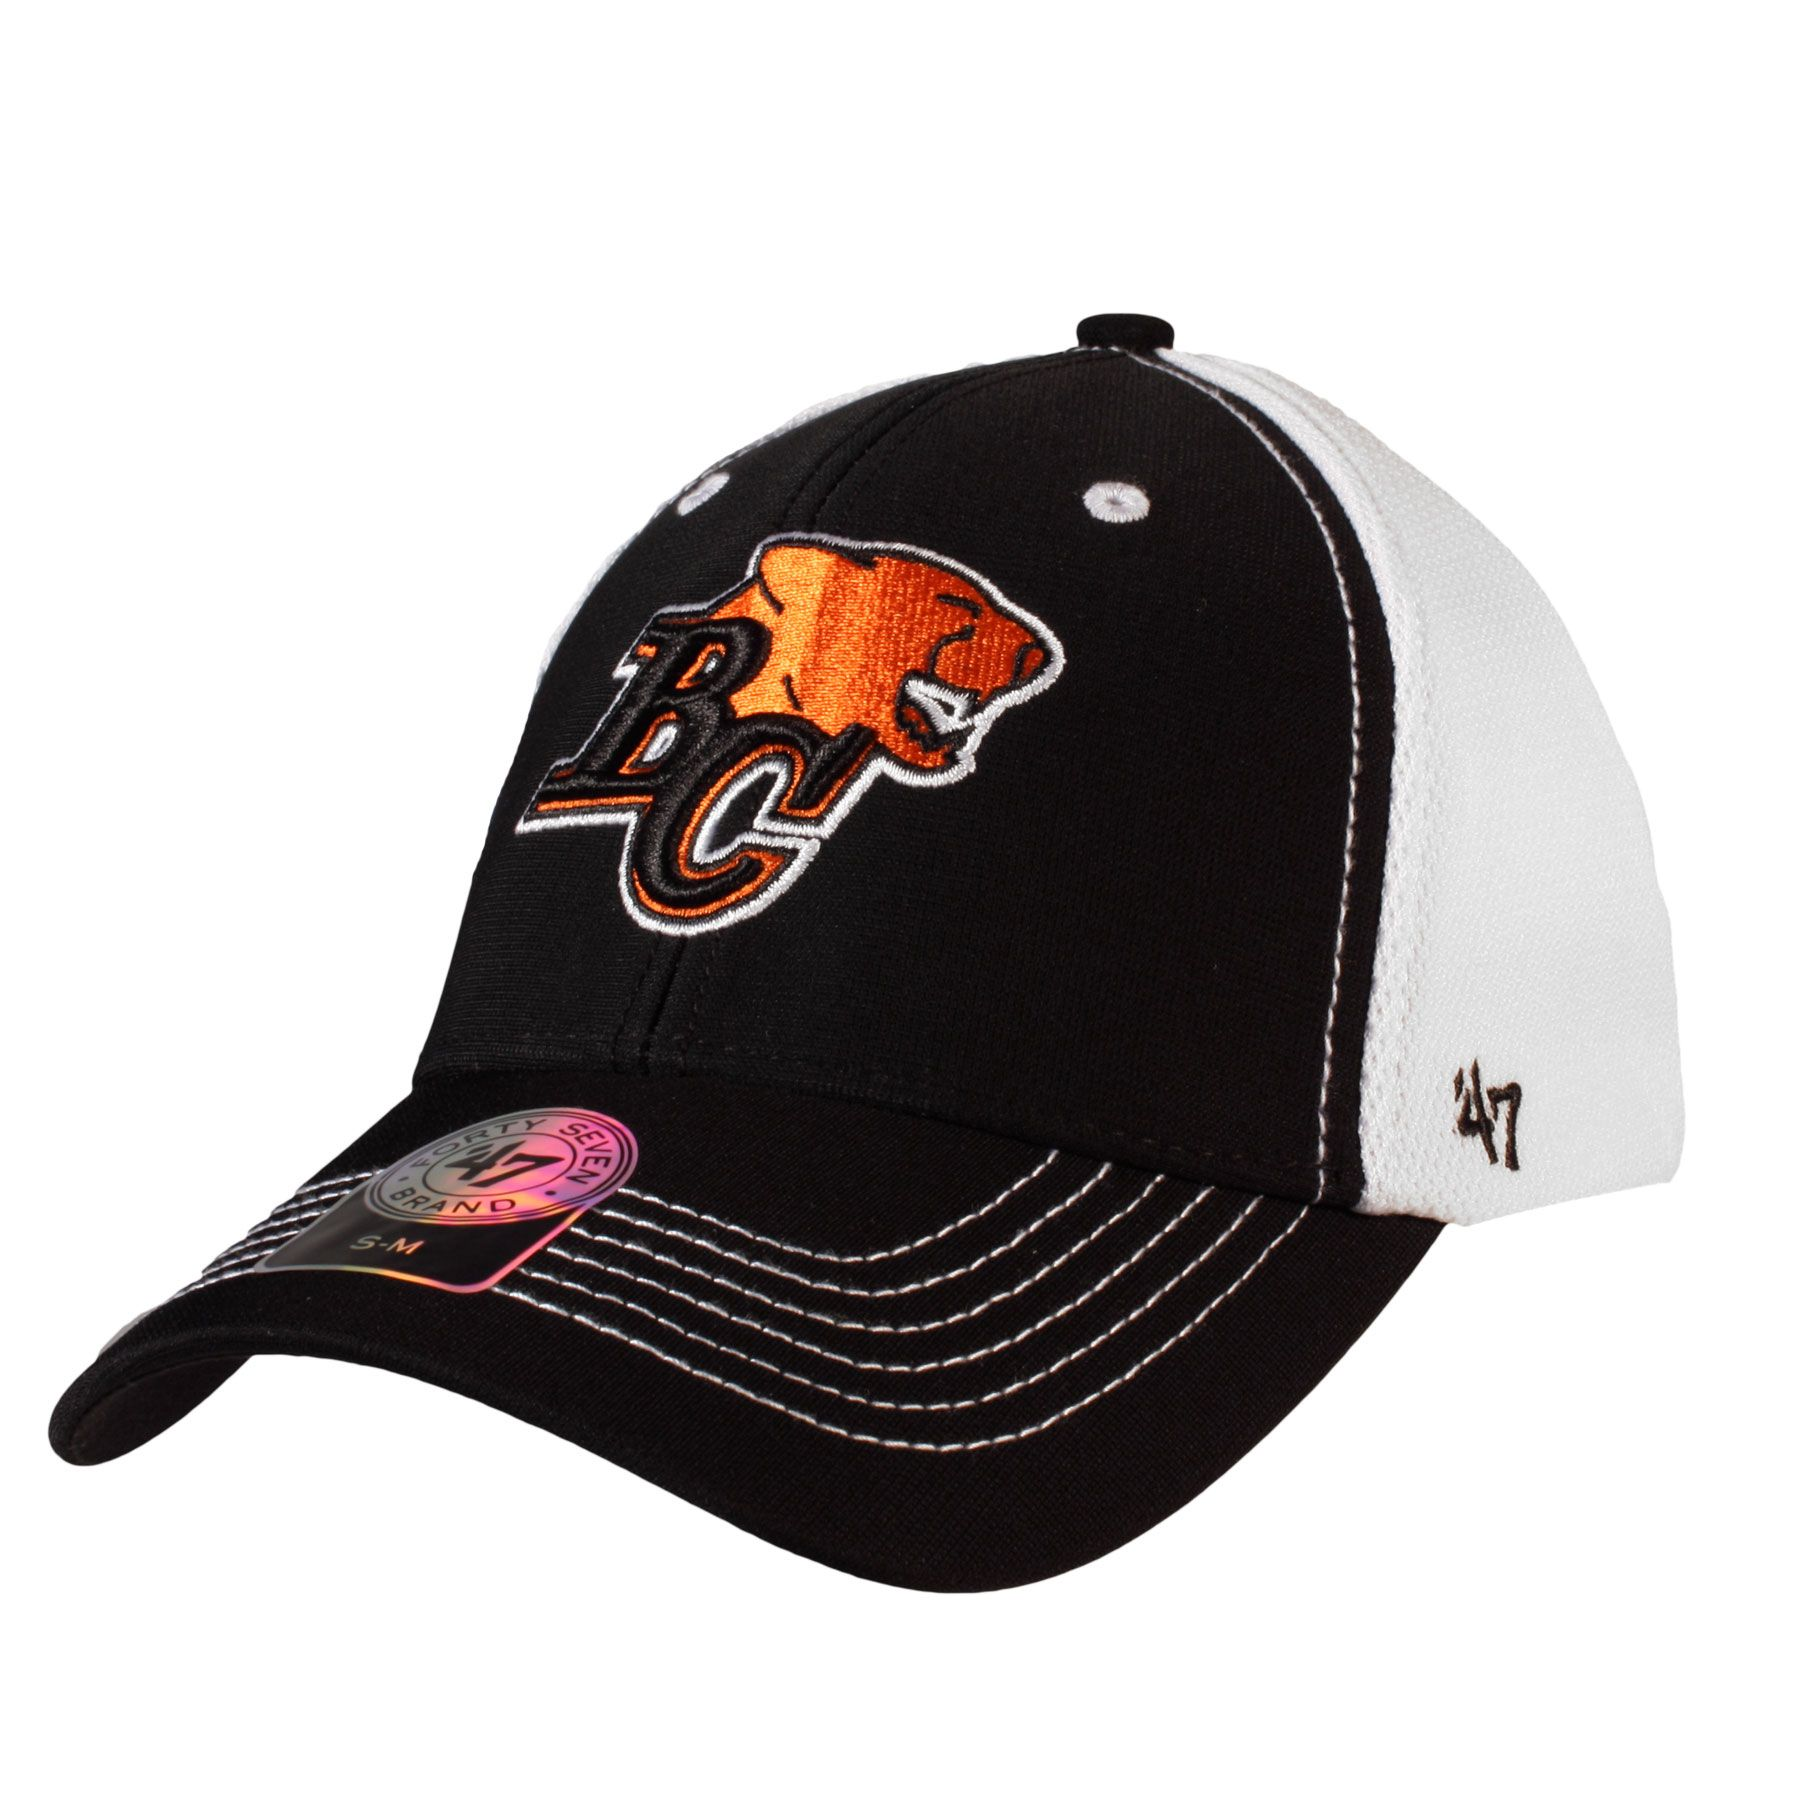 Bc lions cfl influx stretch fit cap fitted caps 47